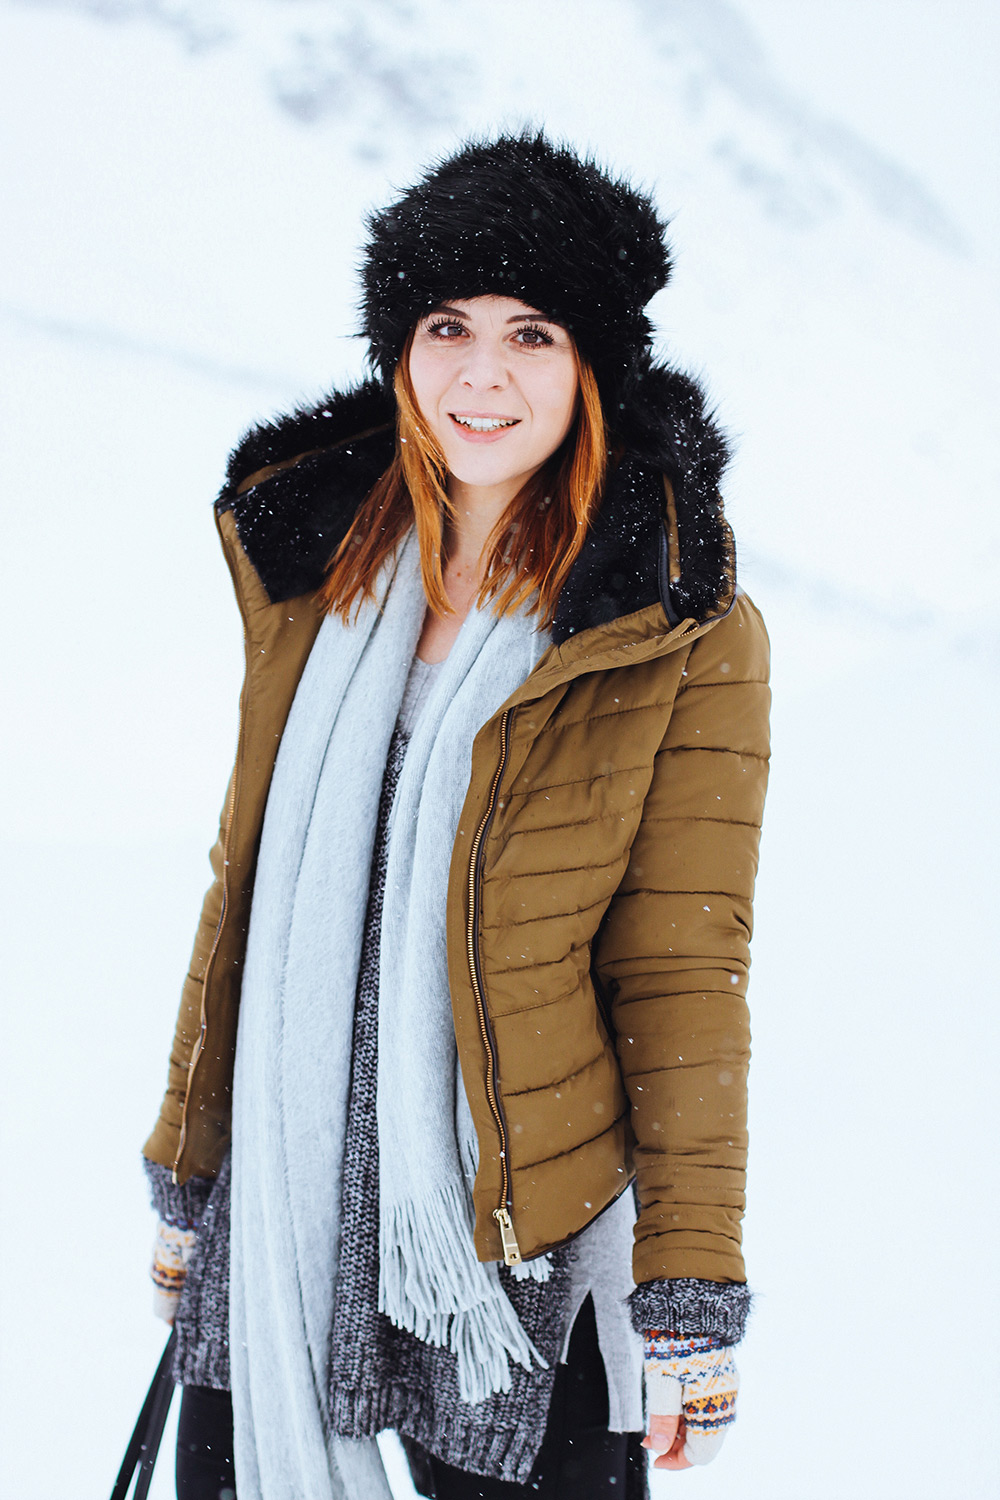 who is mocca, modeblog, fashionblog, influencer, schnee outfit, warme winter boots, gesteppte daunenjacke, winter outfit tirol, streestyle österreich, whoismocca.com